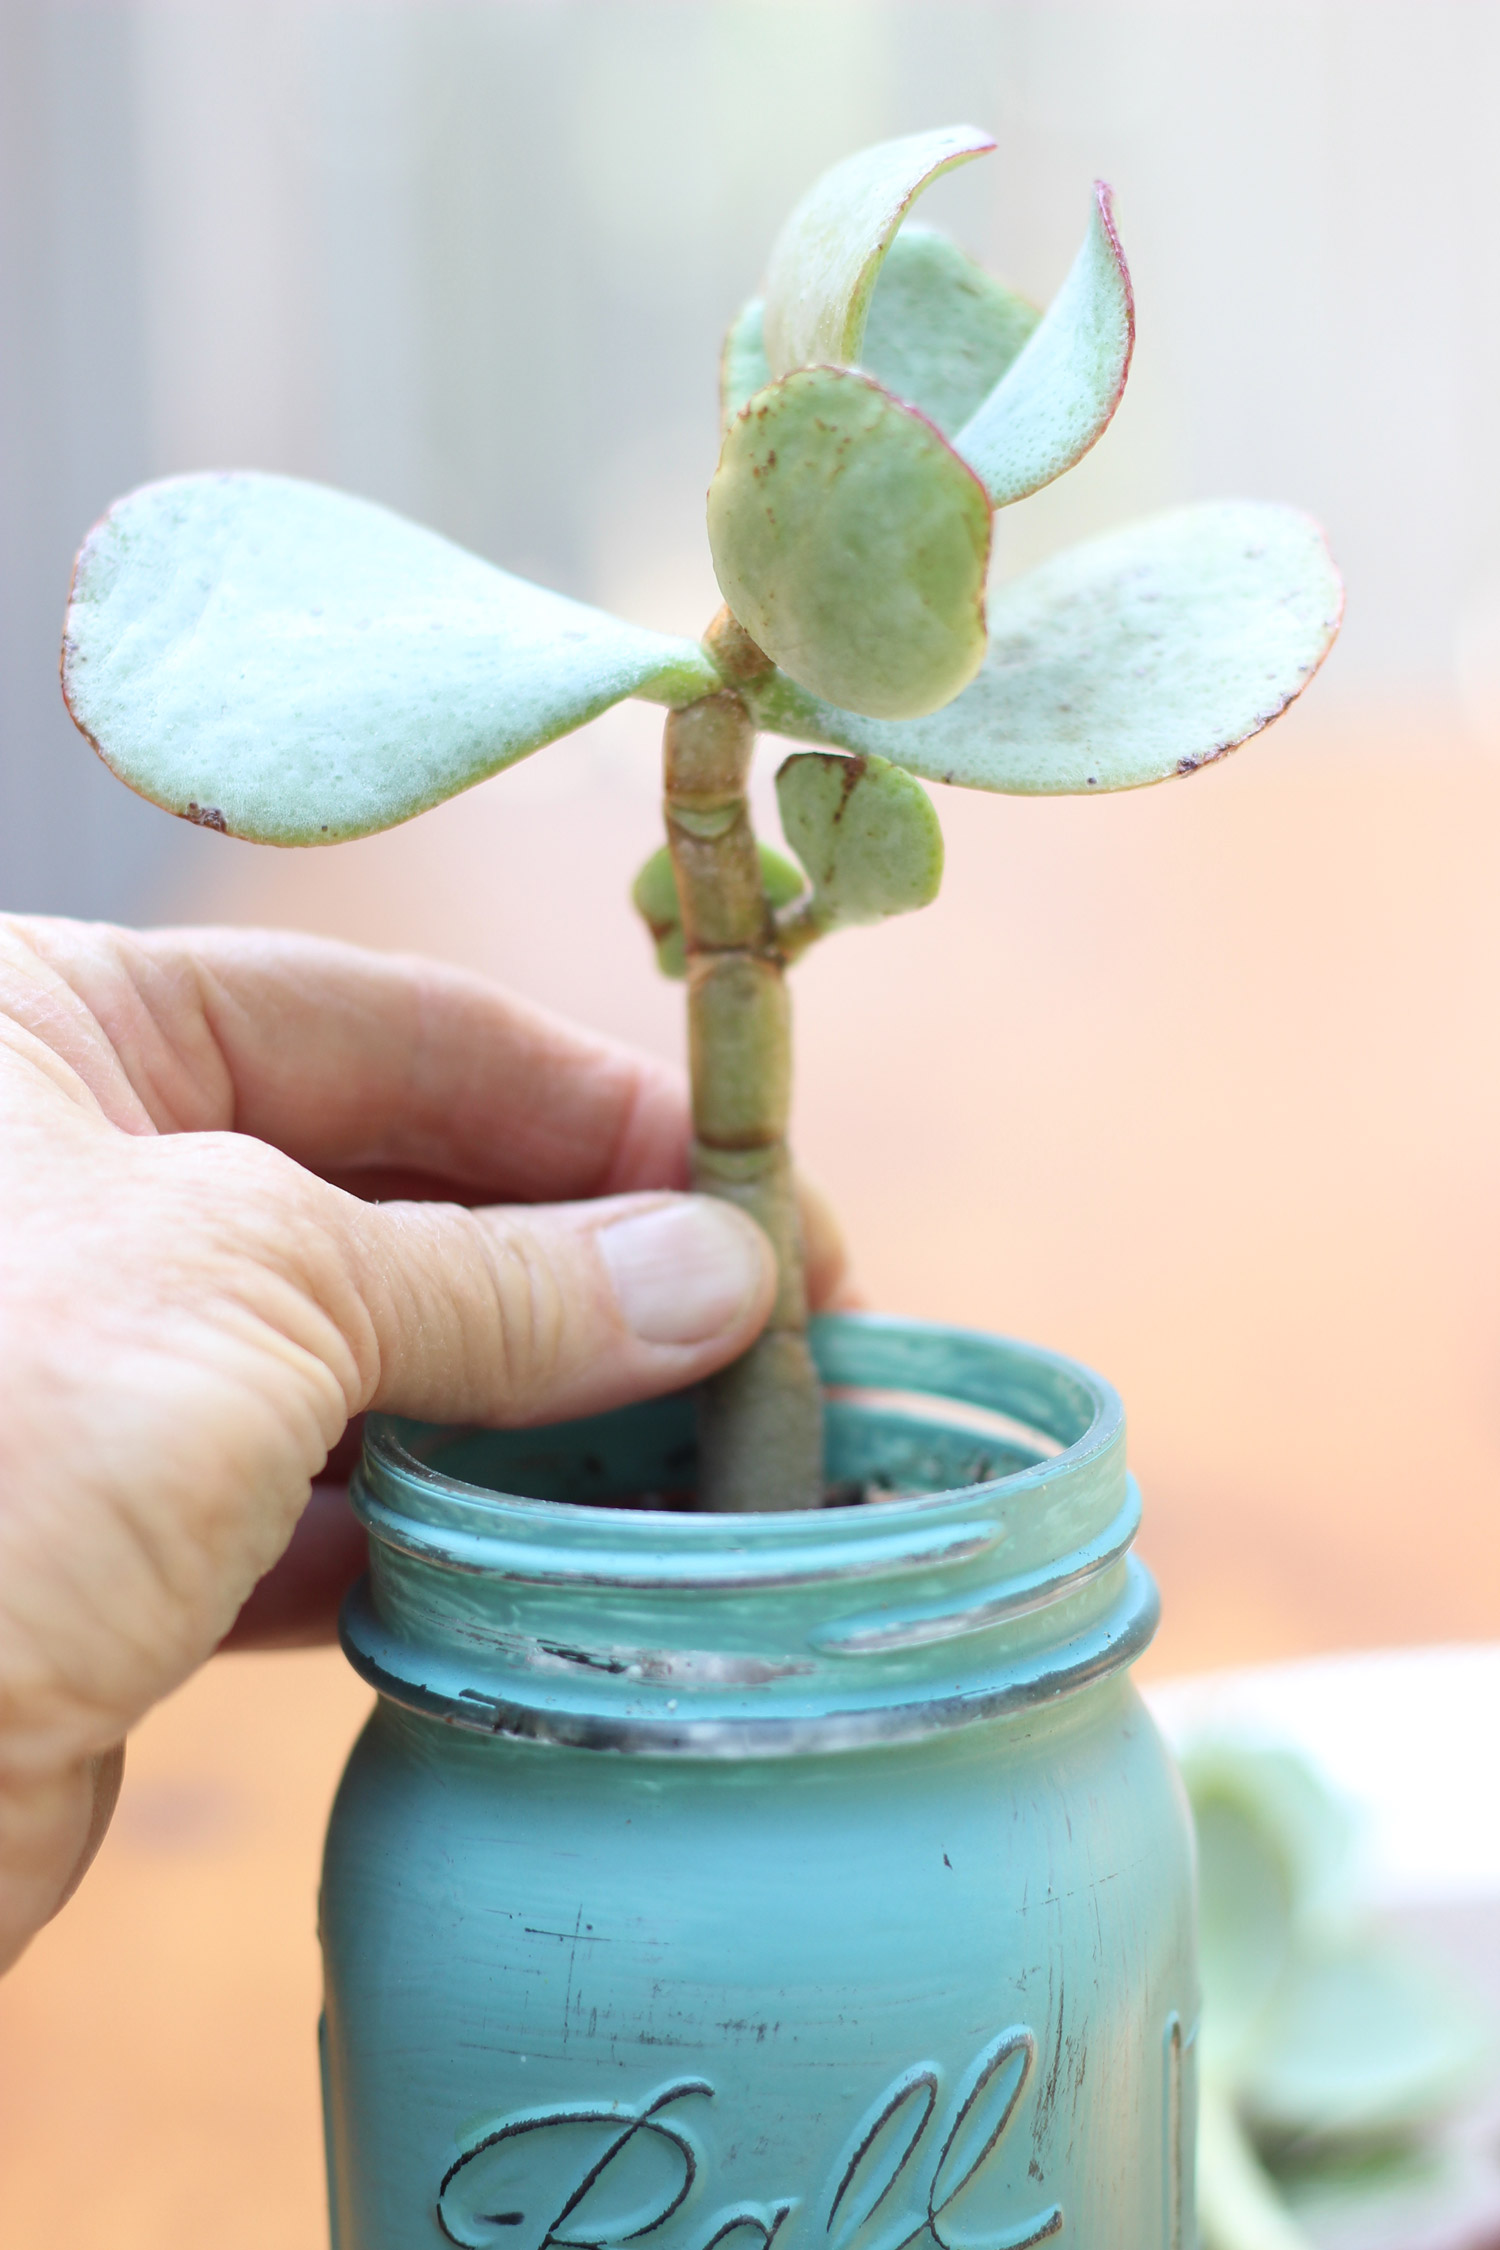 Push your first succulent in right back.